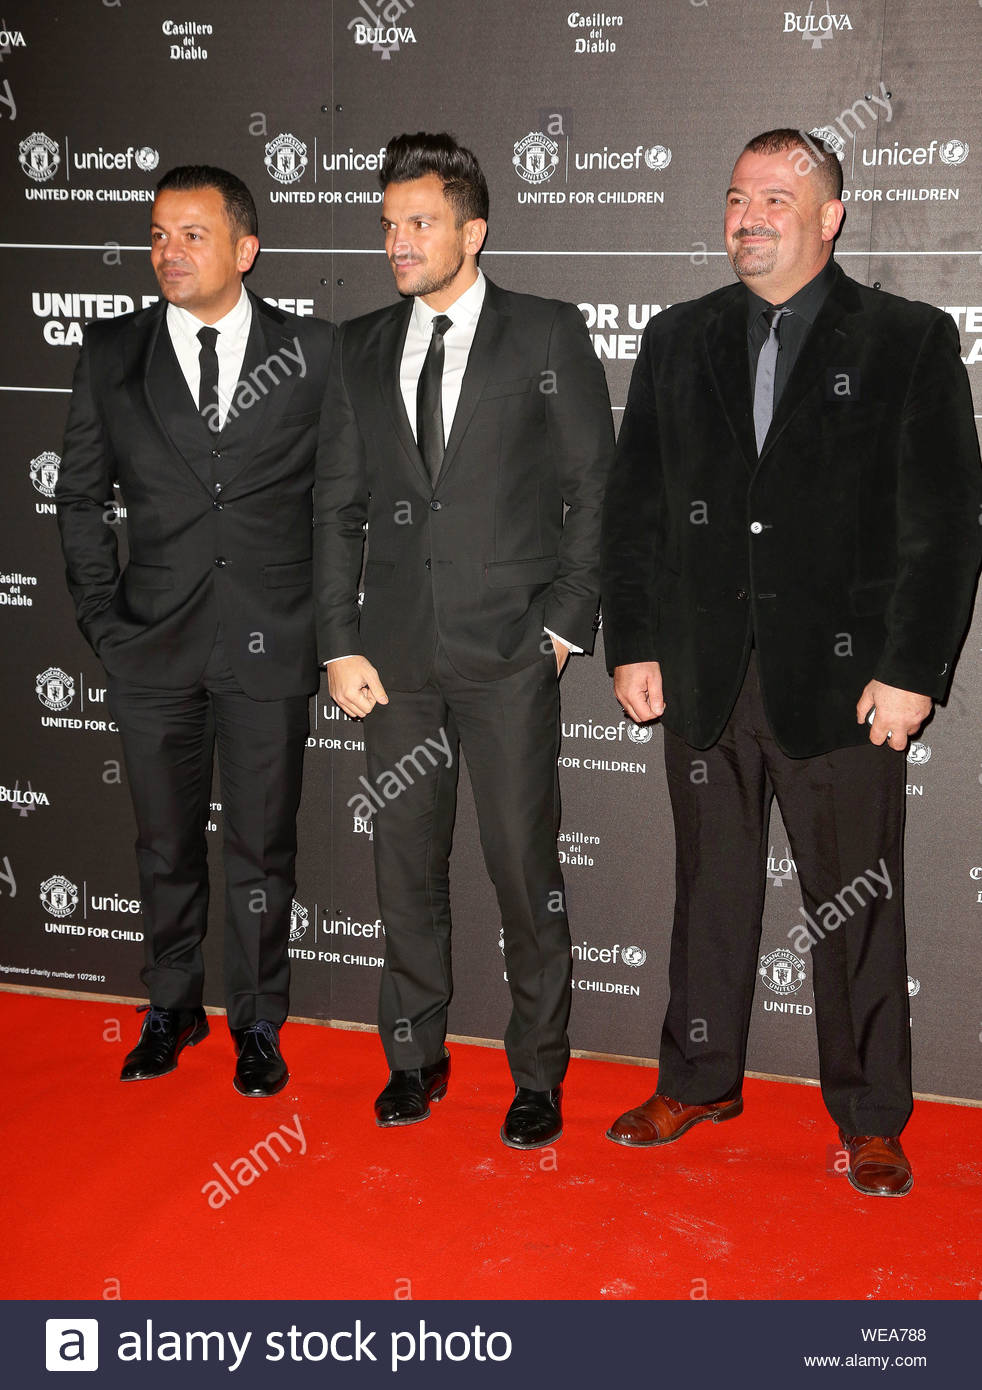 London, UK - Peter Andre arrives for the United for Unicef dinner gala at Manchester United's Old Trafford ground. AKM-GSI November 21, 2013 Stock Photo